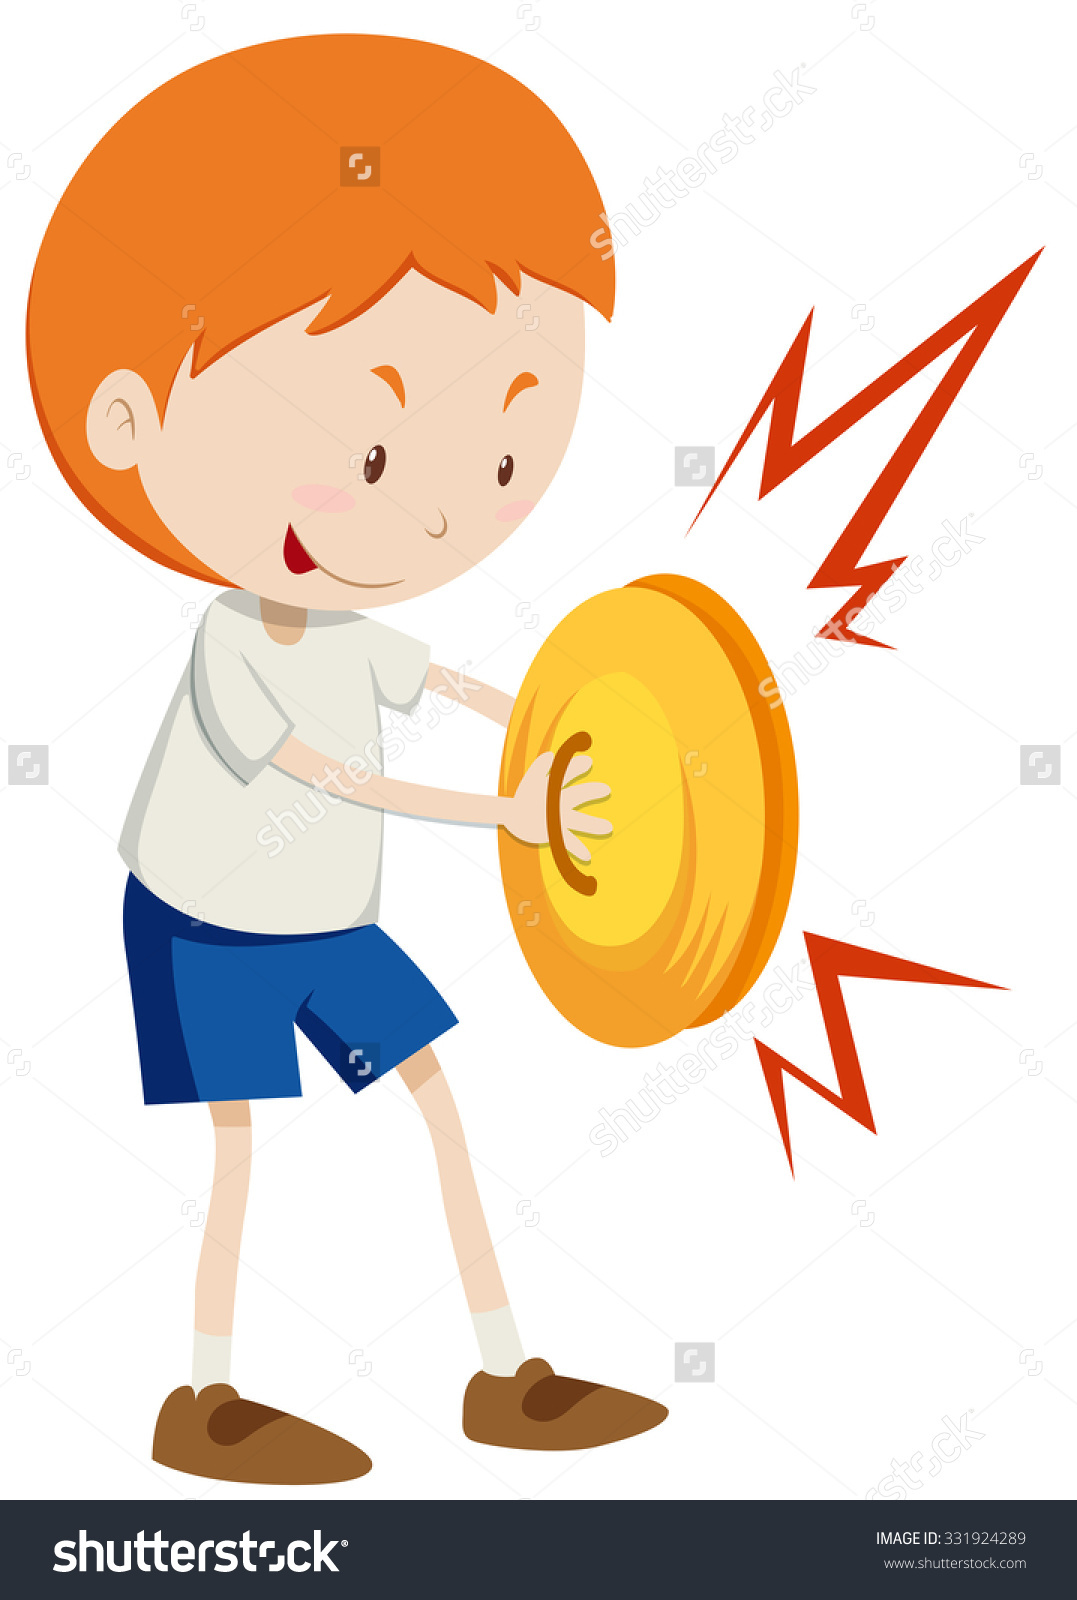 Little Boy Playing Cymbals Illustration Stock Vector 331924289.